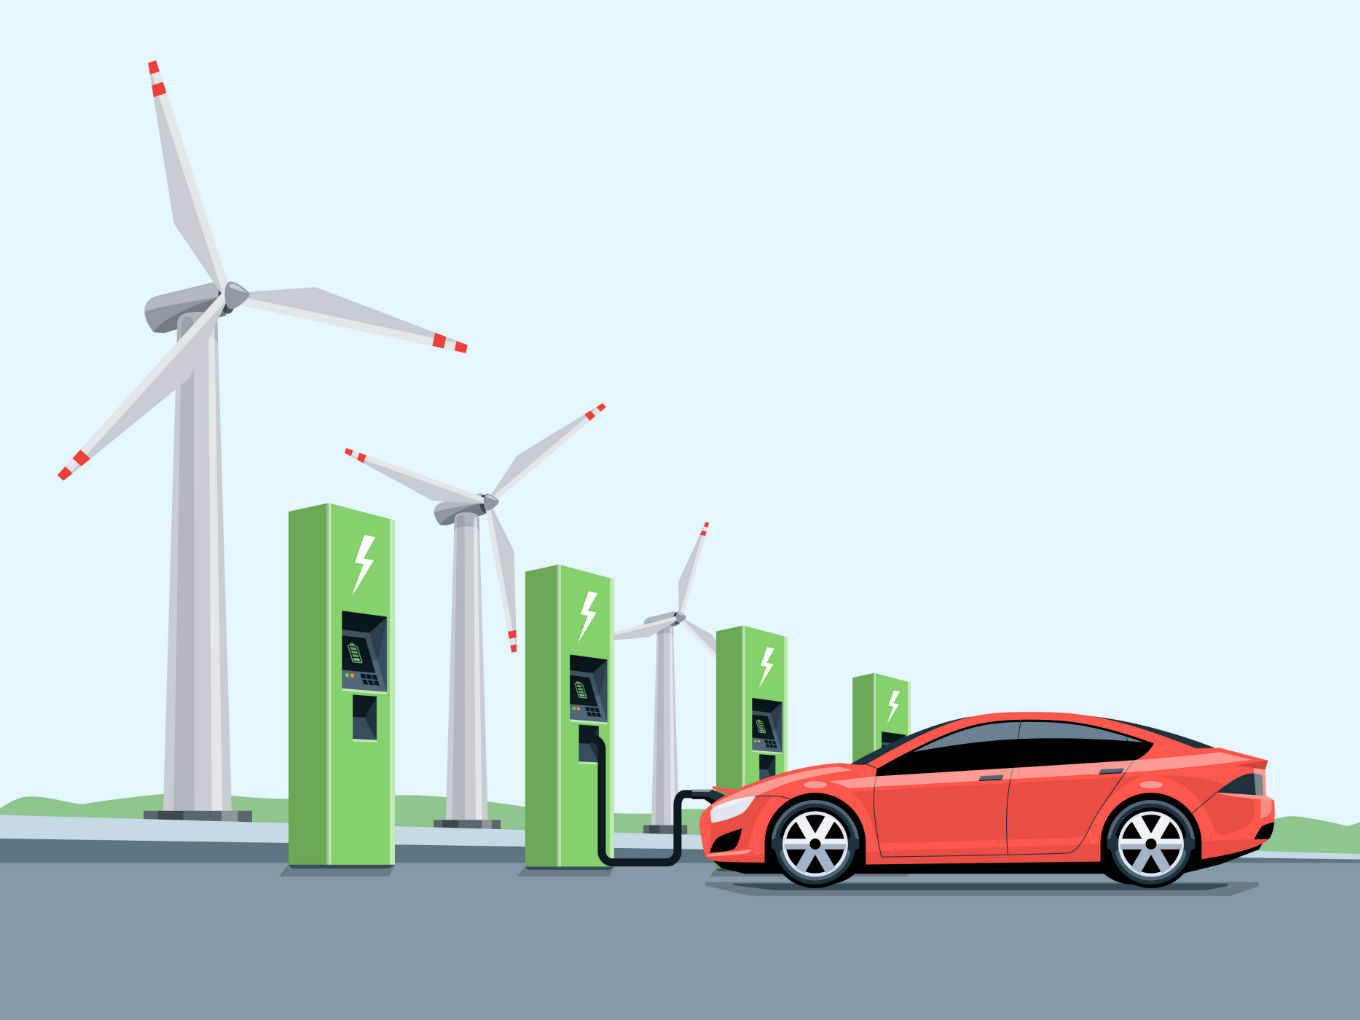 NITI Aayog Asks Oil Ministry To Set Up EV Charging Infra At Fuel Stations